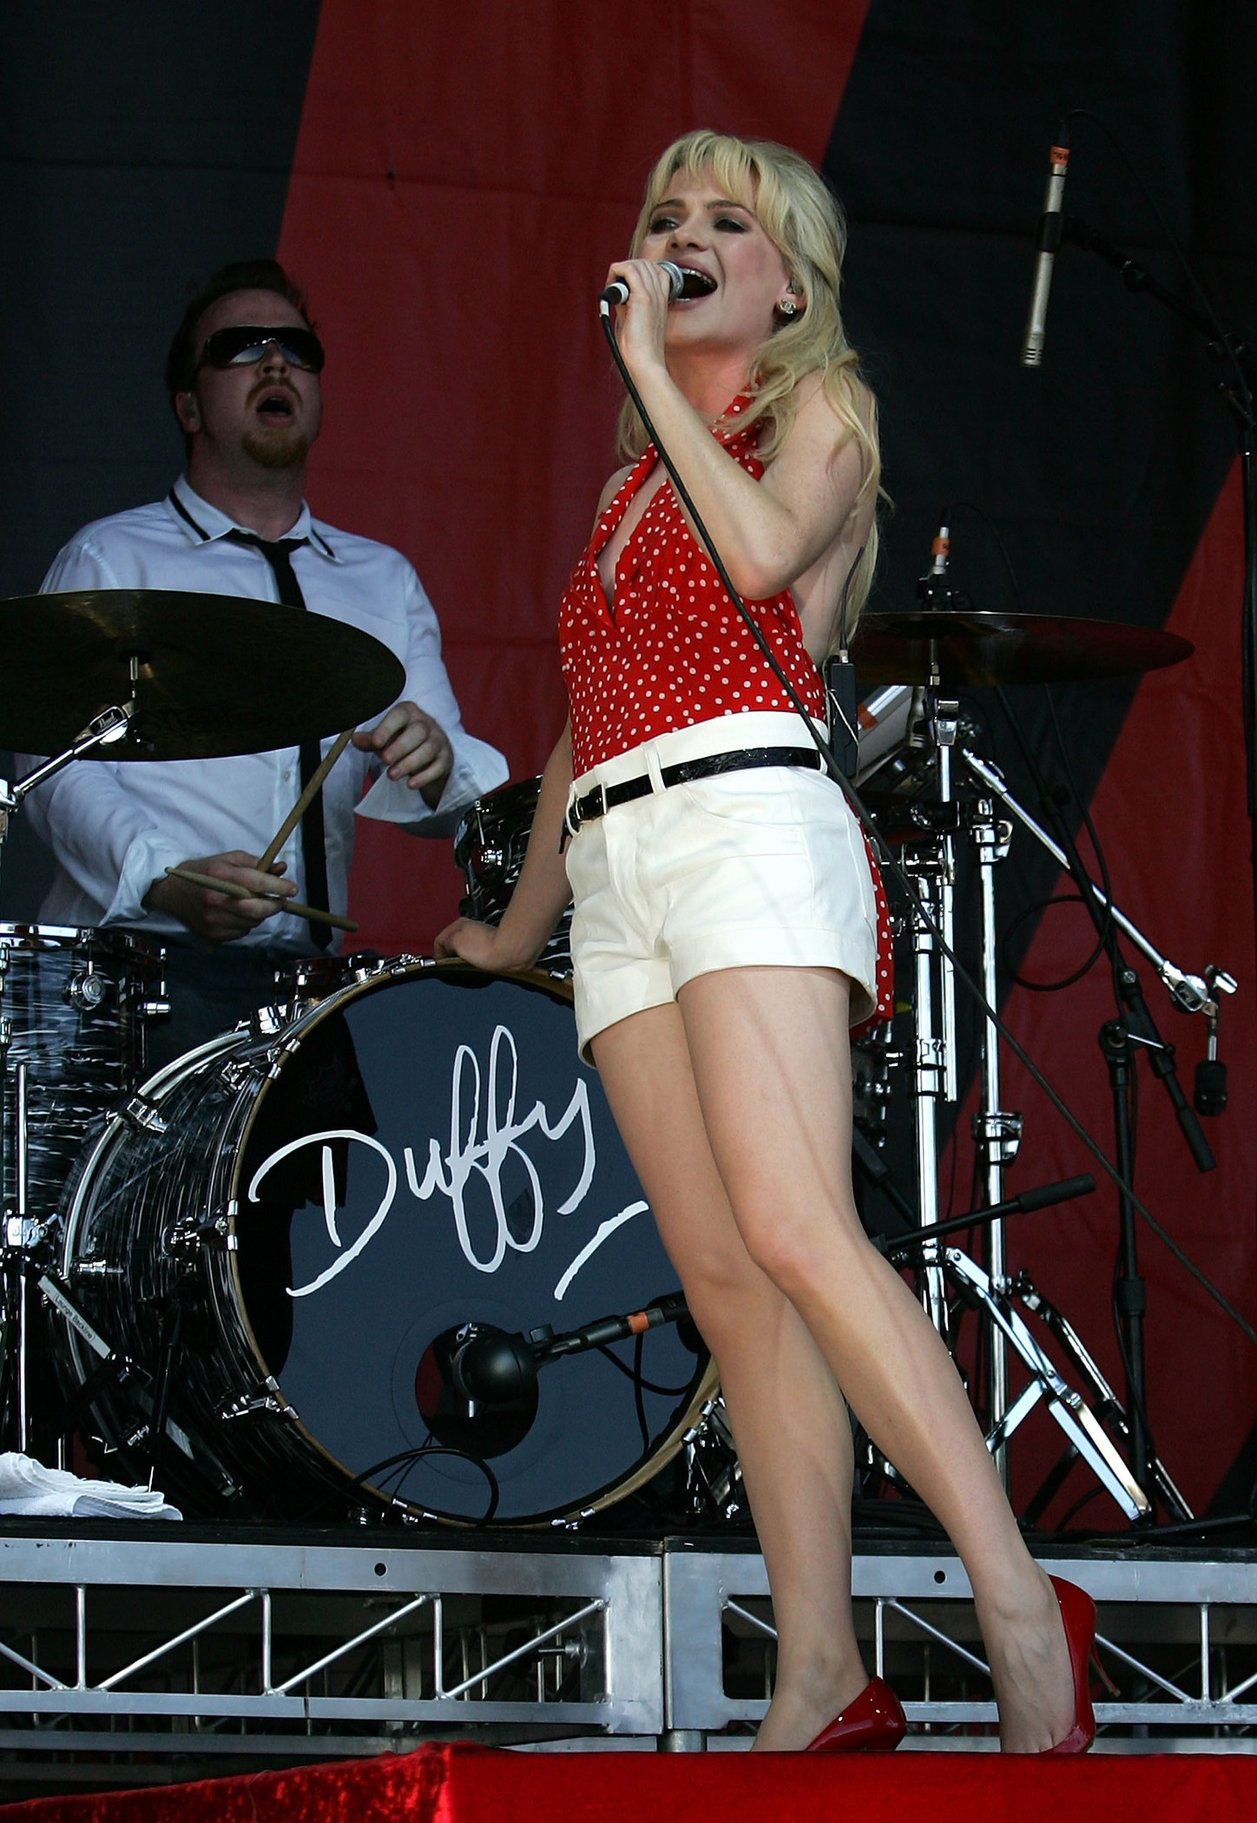 Aimee Anne duffy performing on stage during the 2009 V Festival on April 5, 2010